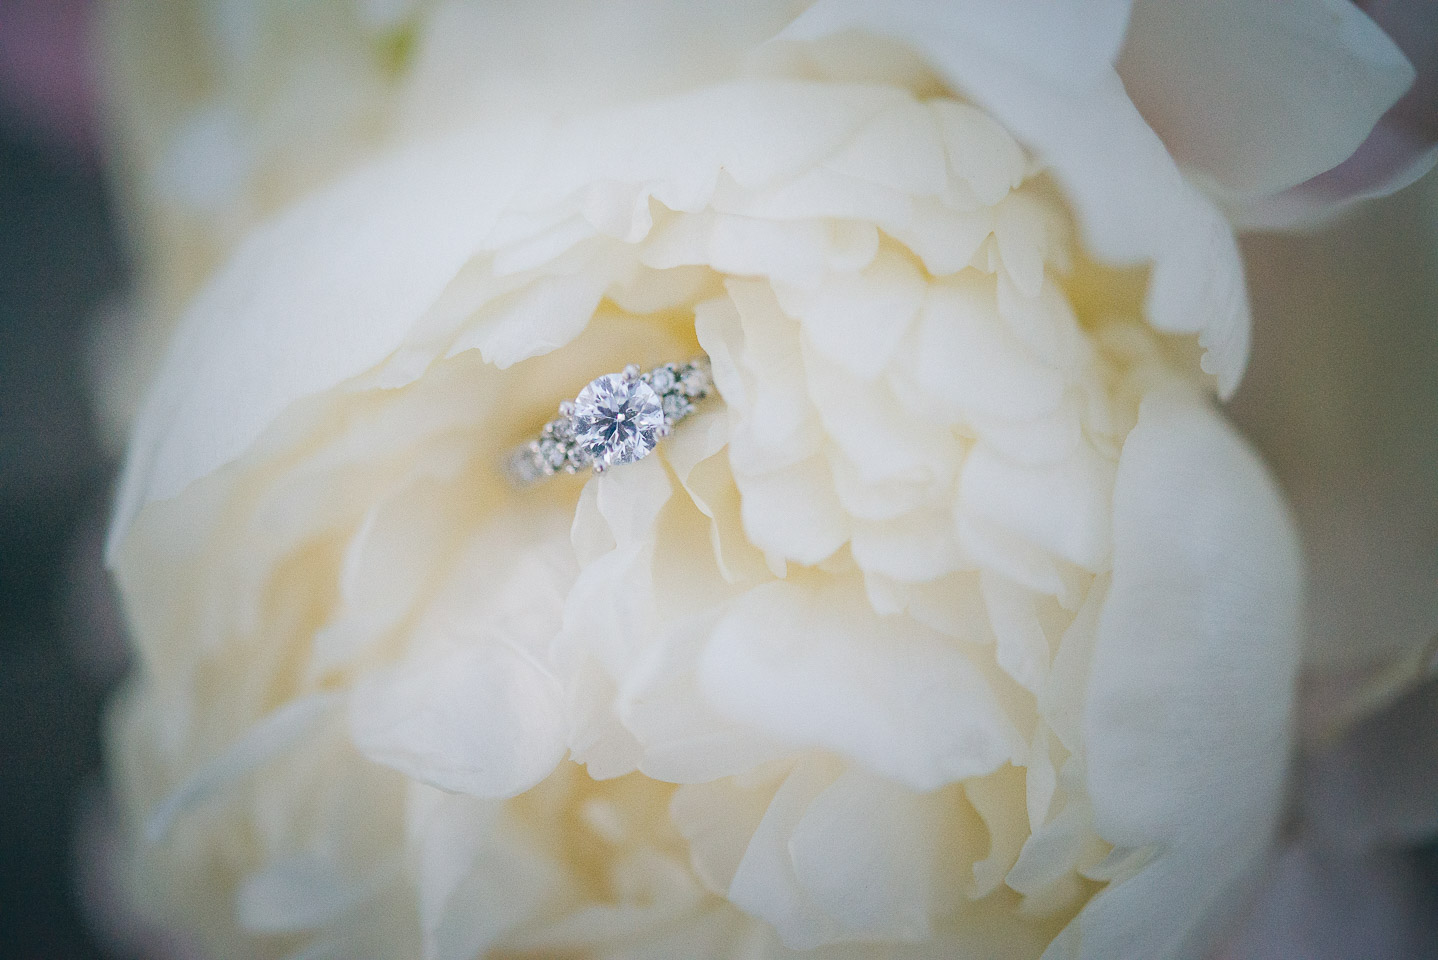 NH Wedding Photography: engagement ring in bouquet